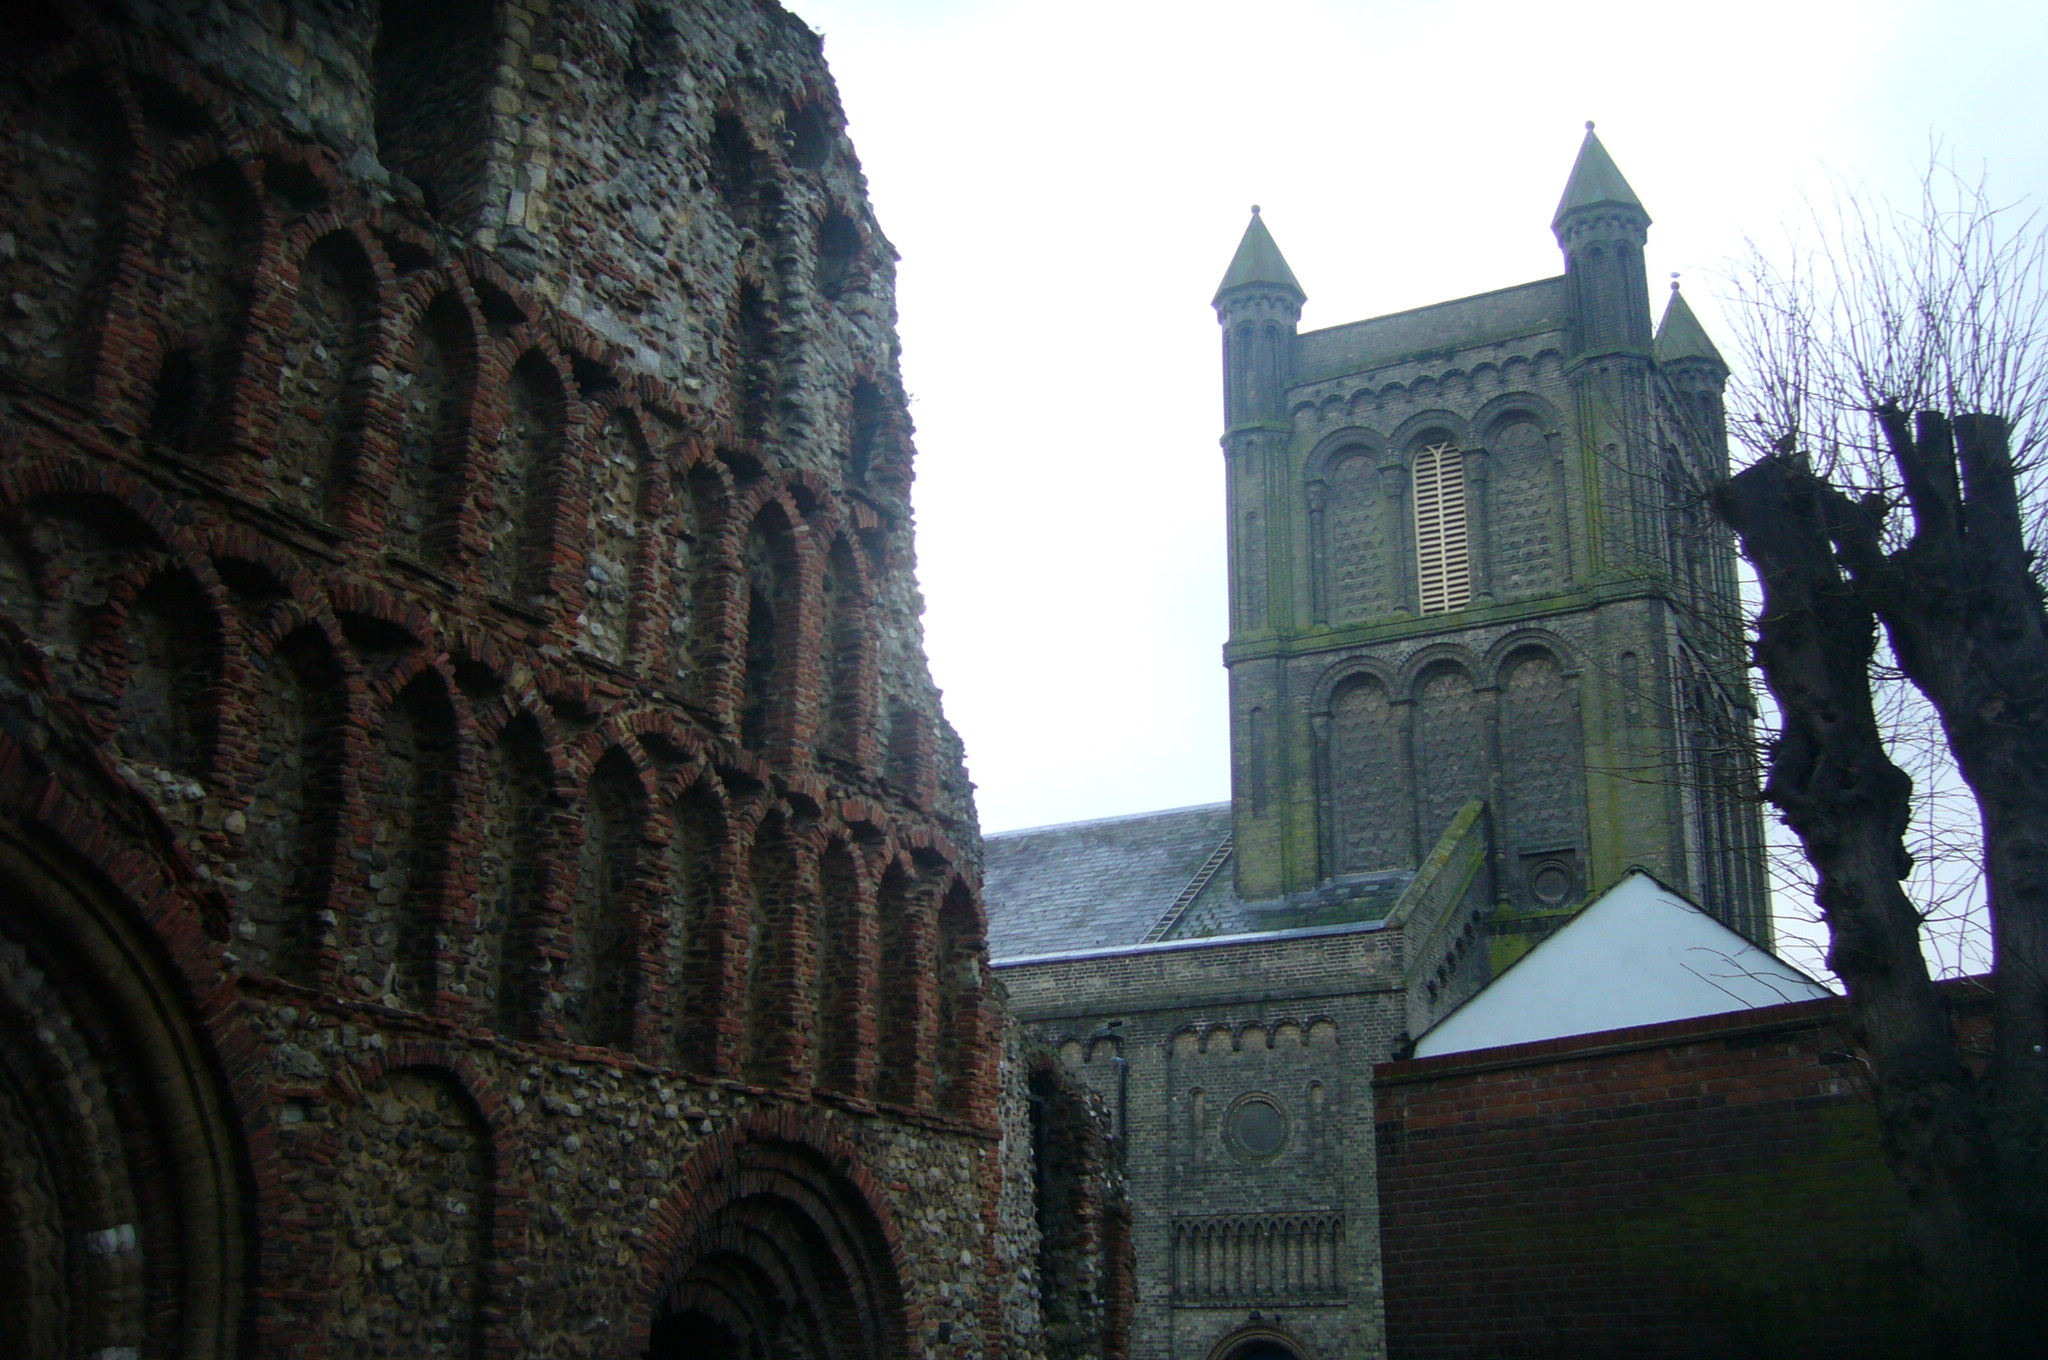 St. Botolph's Church, Colchester